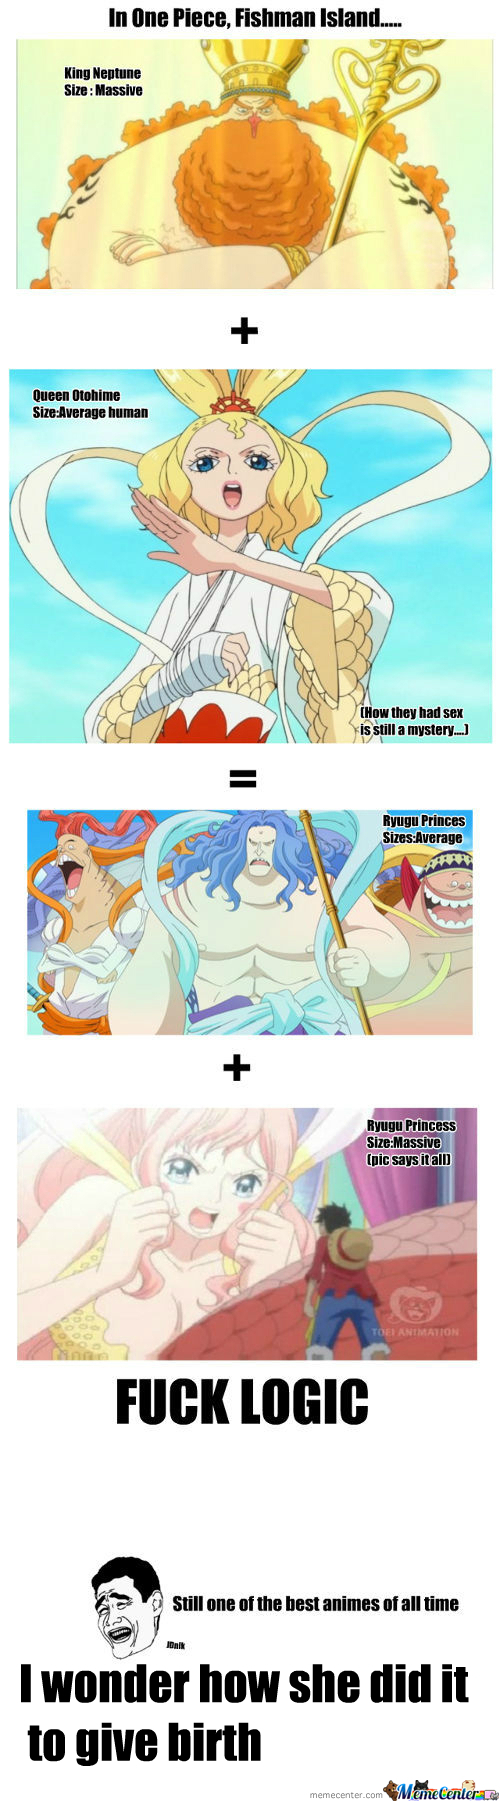 [RMX] One Piece Logic